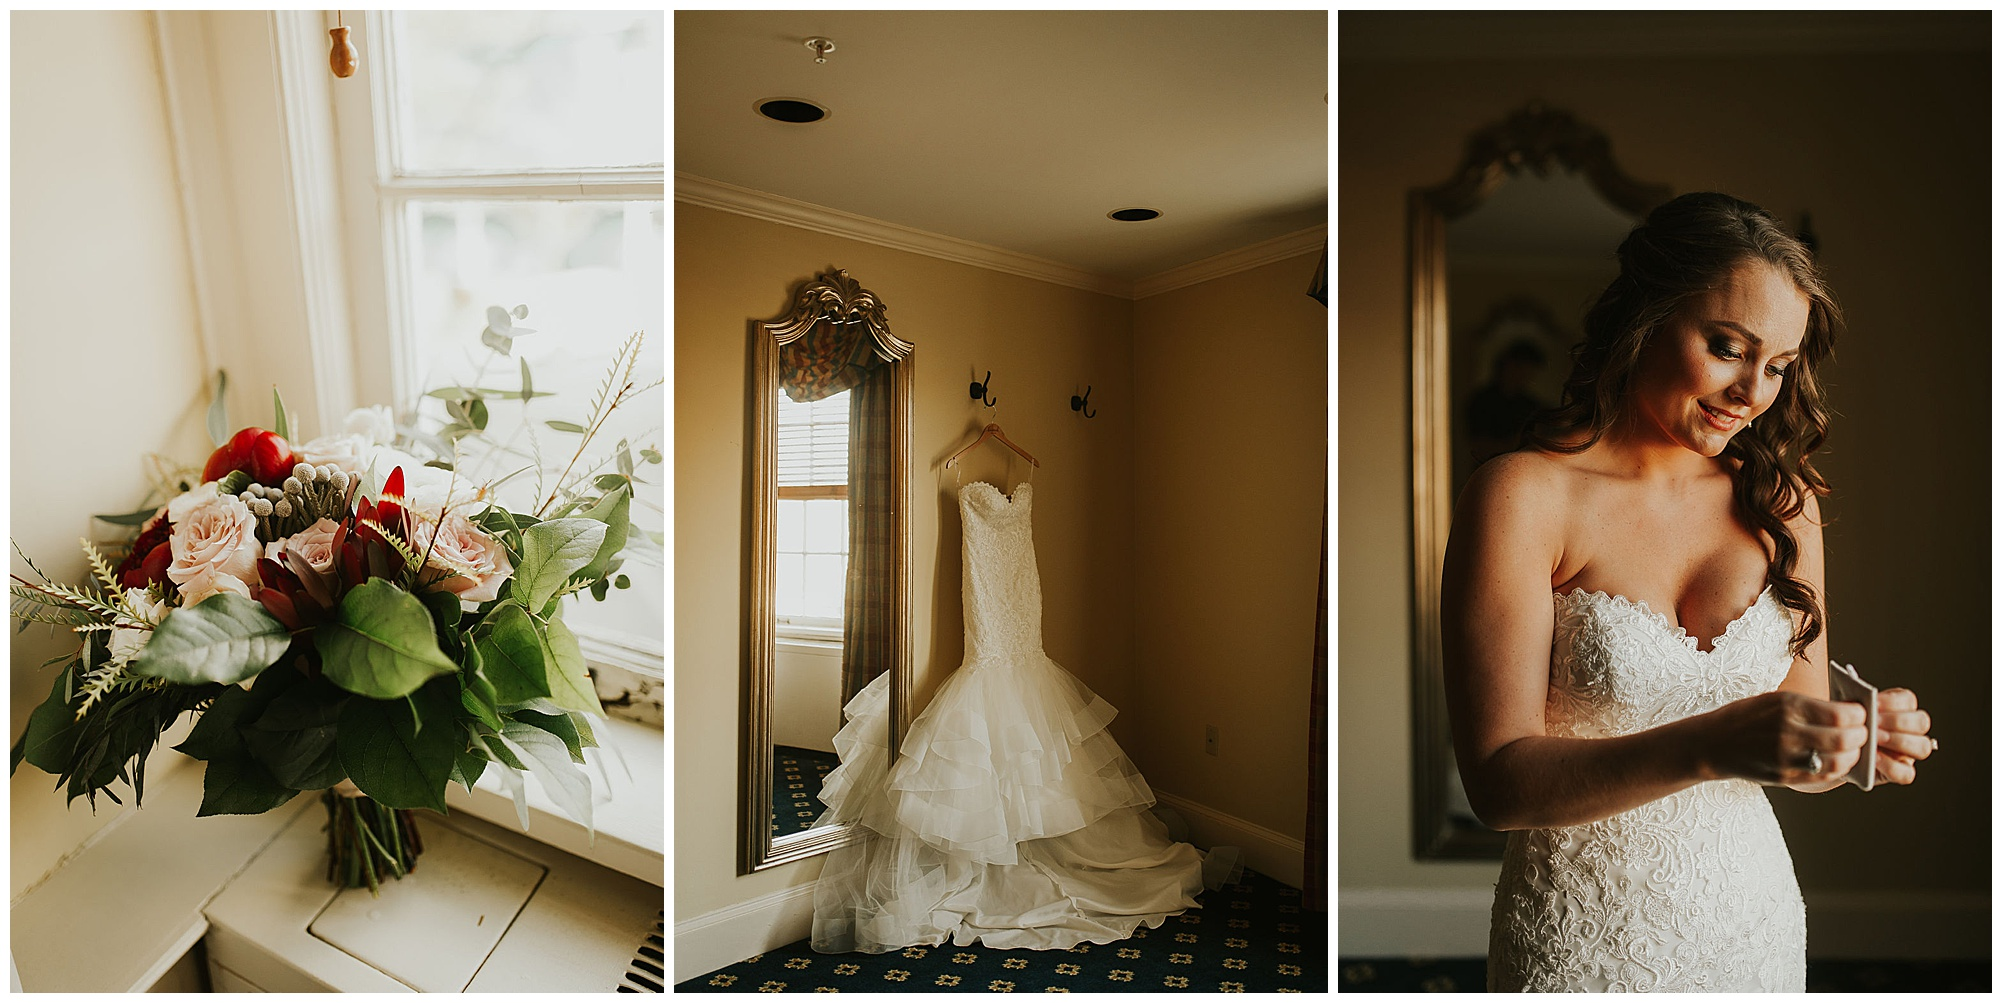 bridal bouquet, wedding dress gown, and bride getting ready at historic wedding venue indoors in easton maryland. now featured on my eastern shore wedding blog.